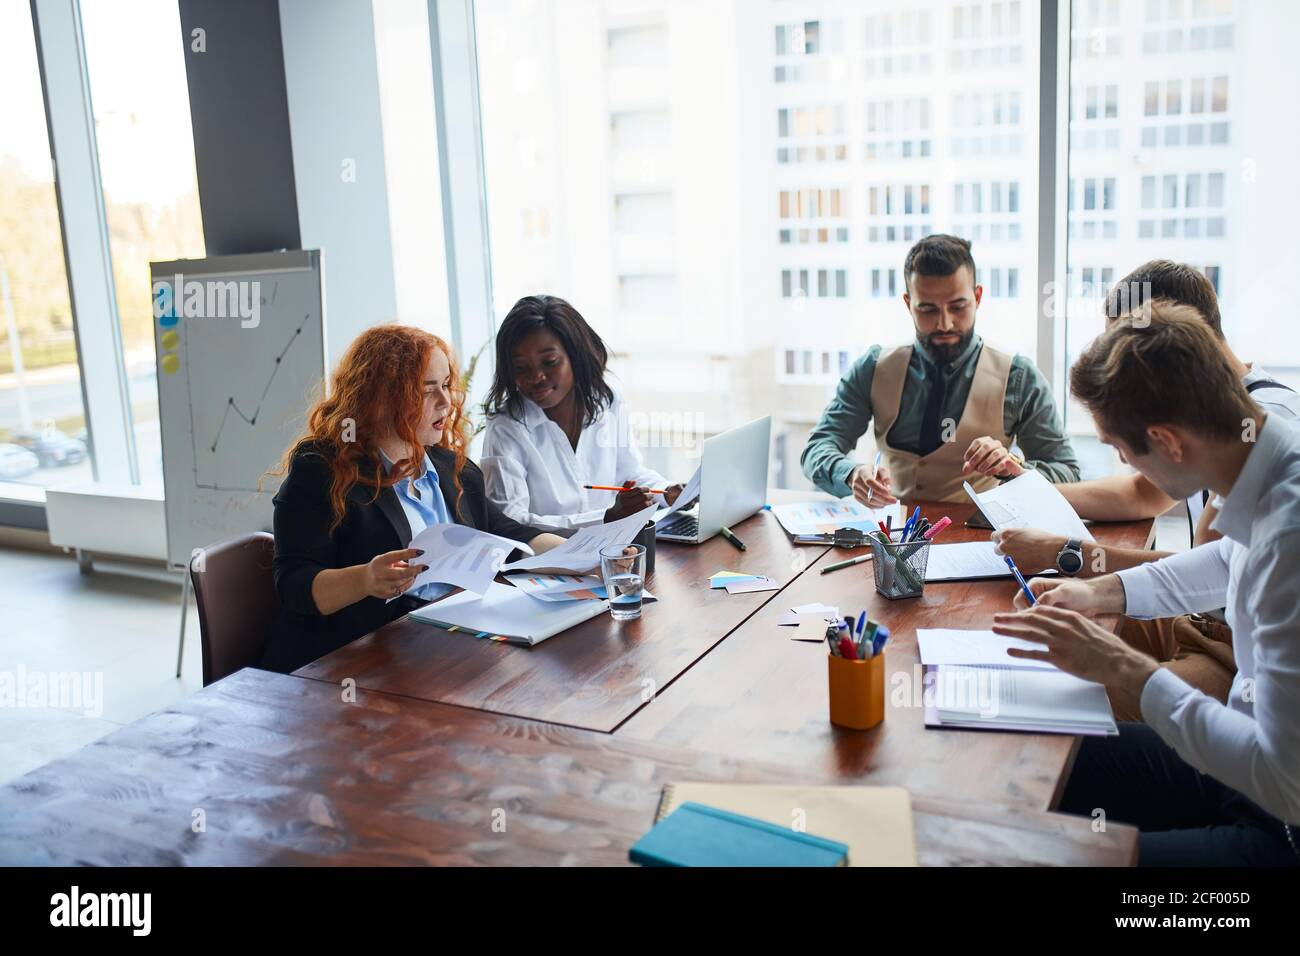 international group of people, business team gathered on table to discuss business ideas, using papers, diagrams. Creative business people Stock Photo